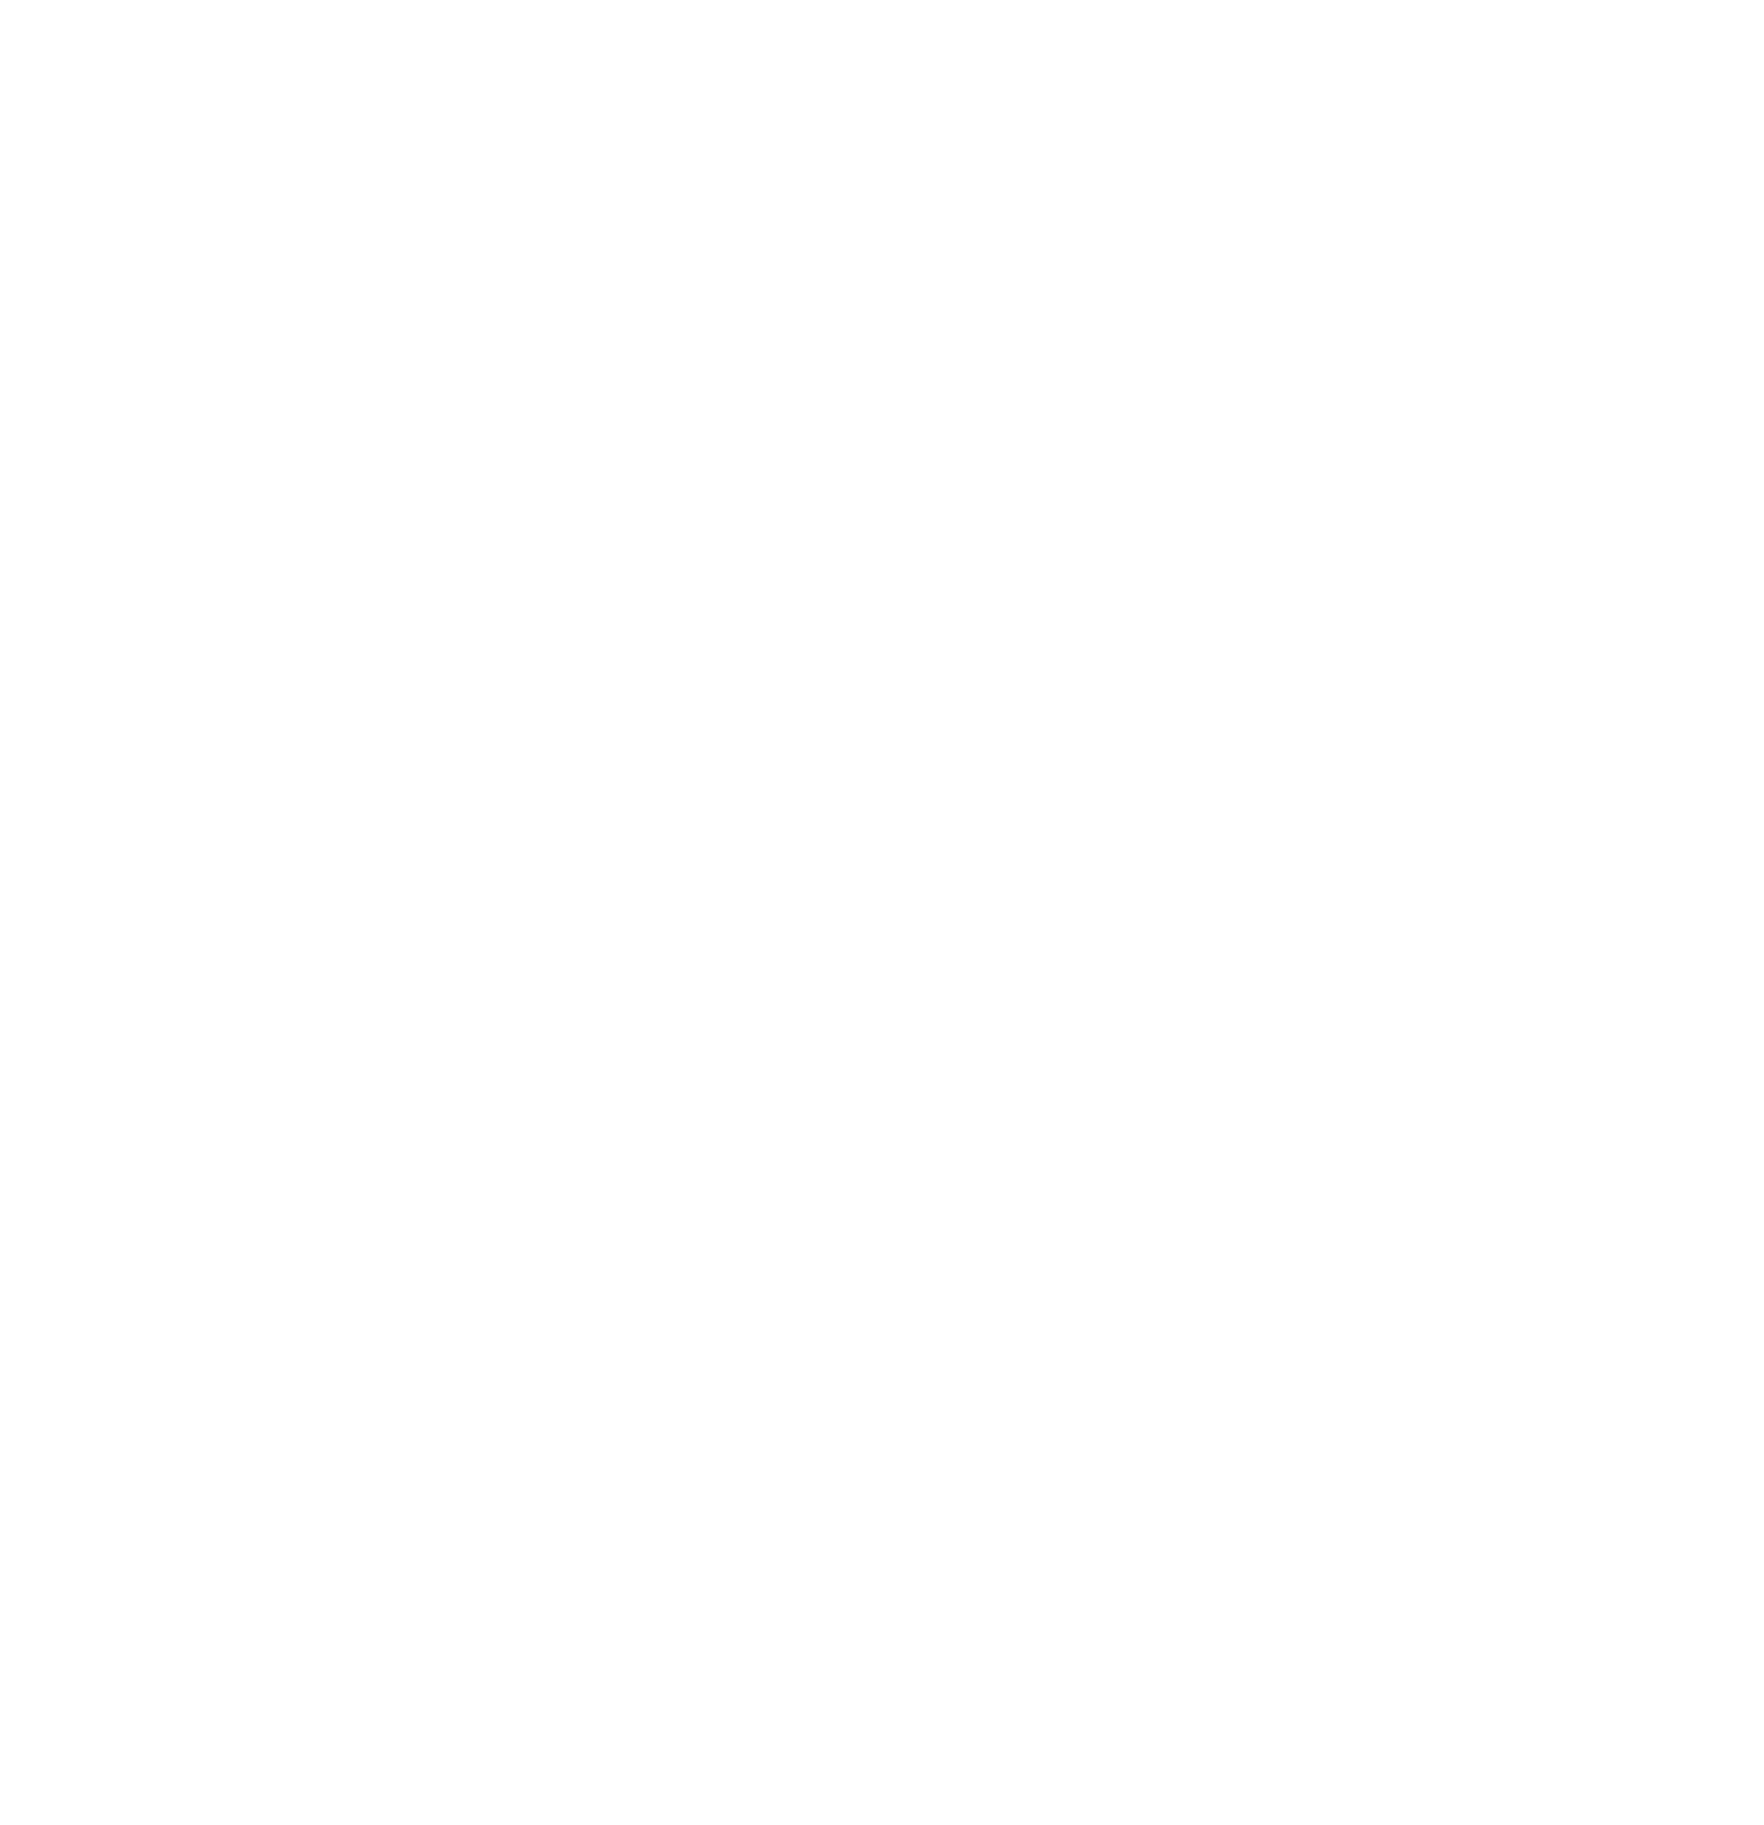 TrafficRoots